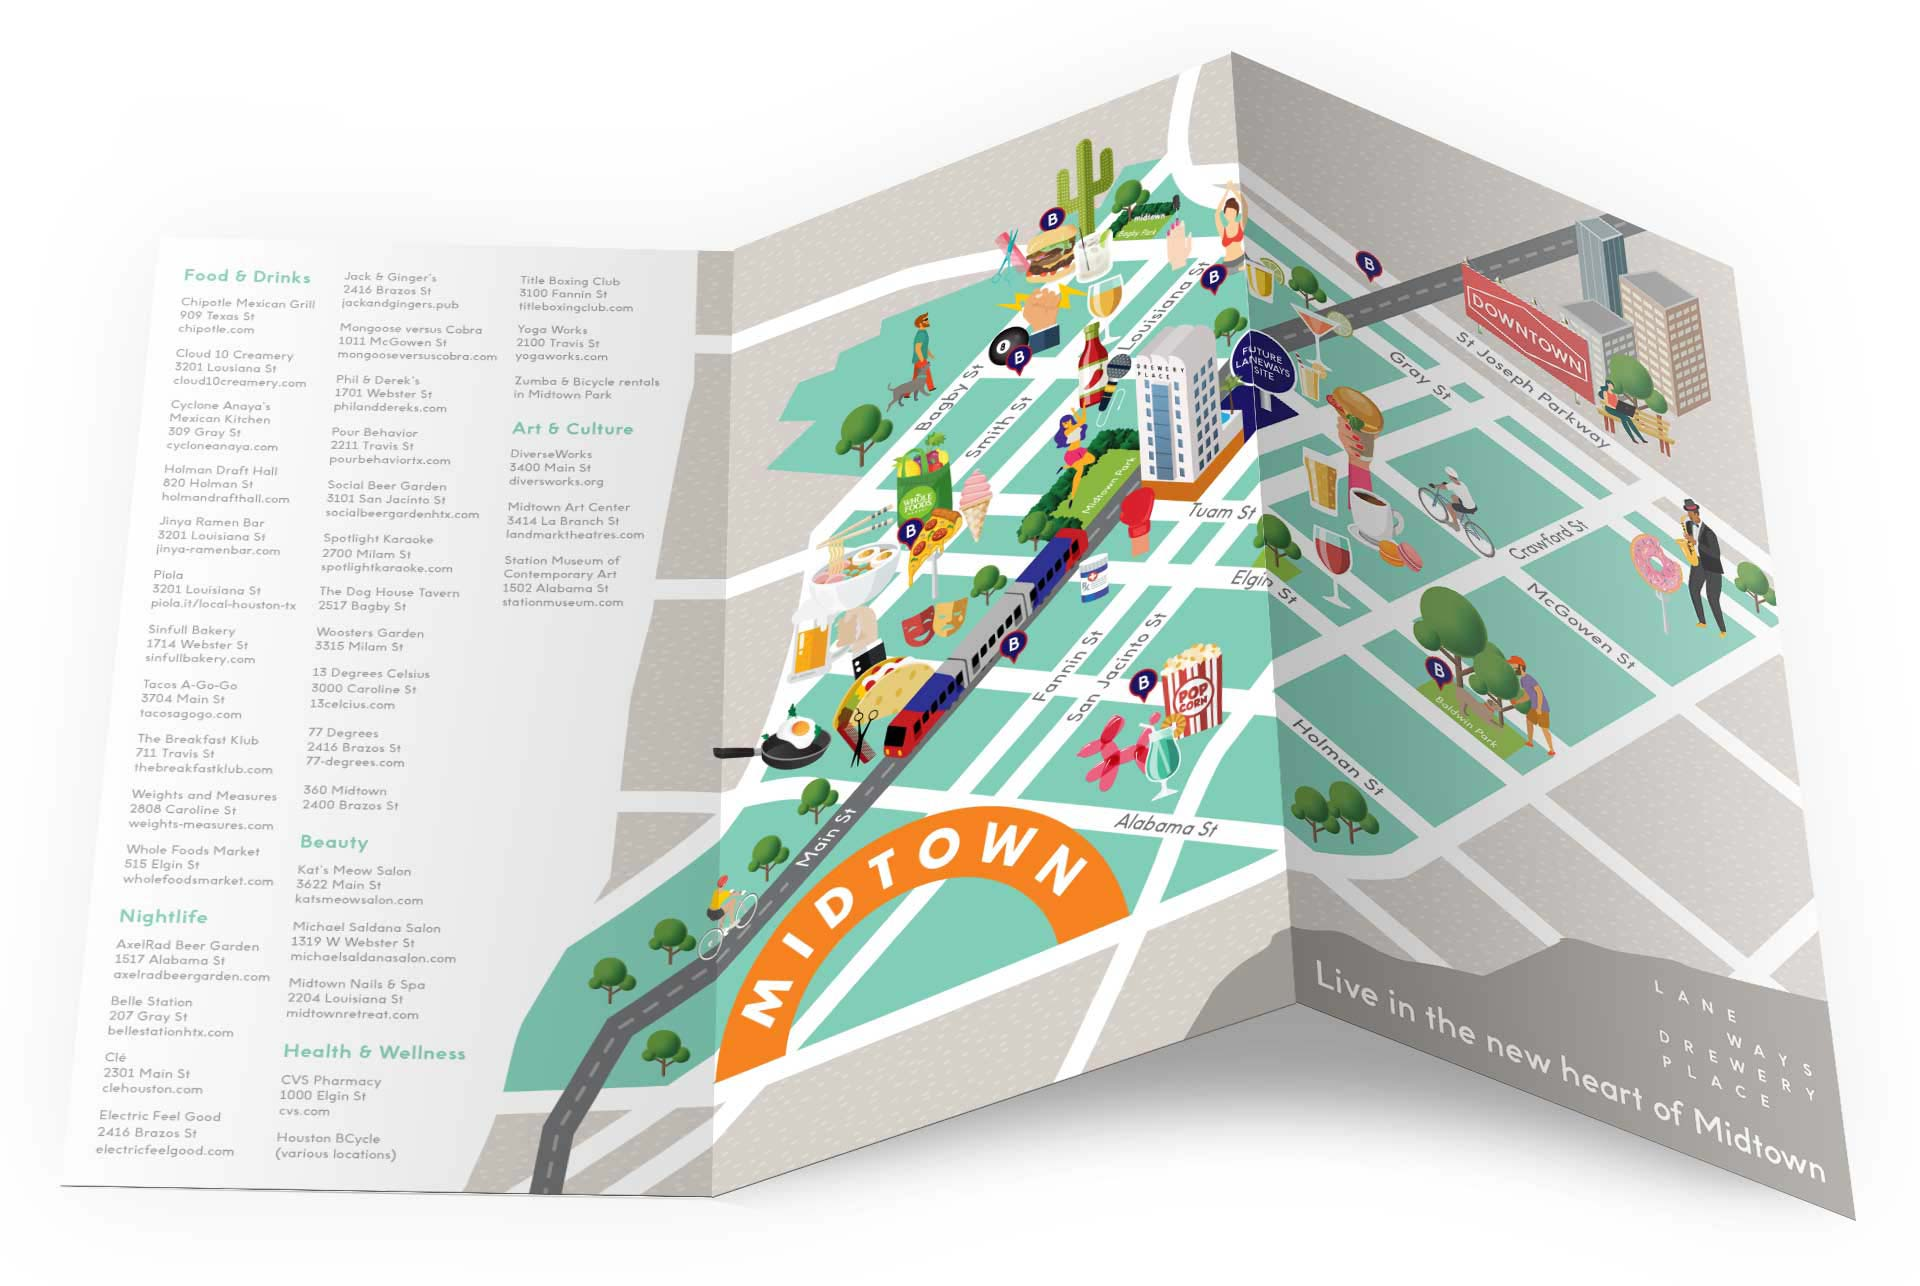 Snapshot of the Midtown map